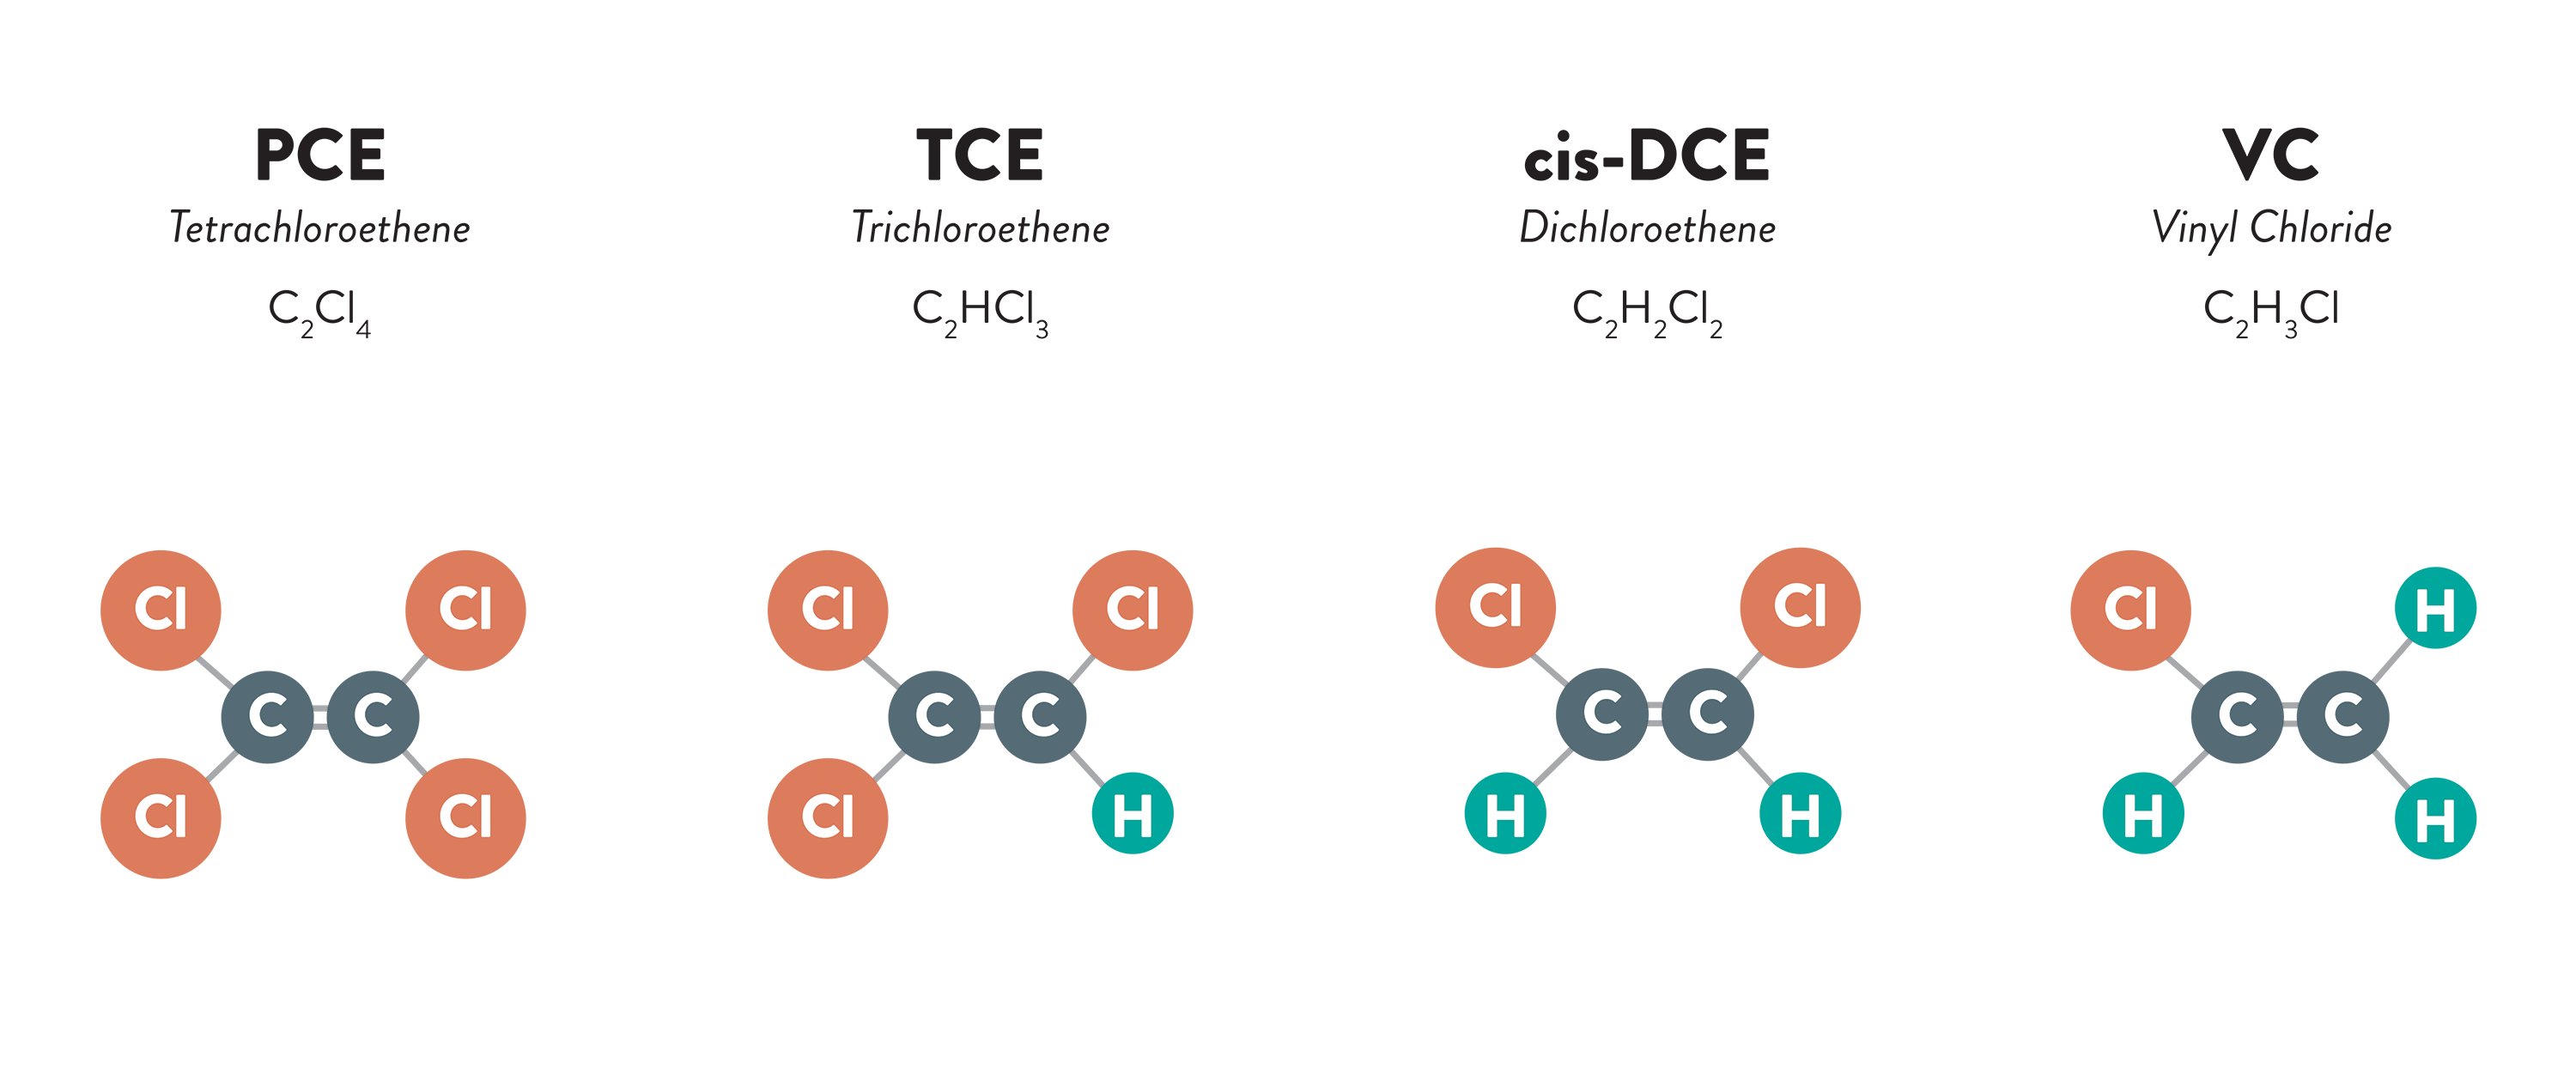 chemical structure of PCE degrading into TCE, cis-DCE, and finally VC